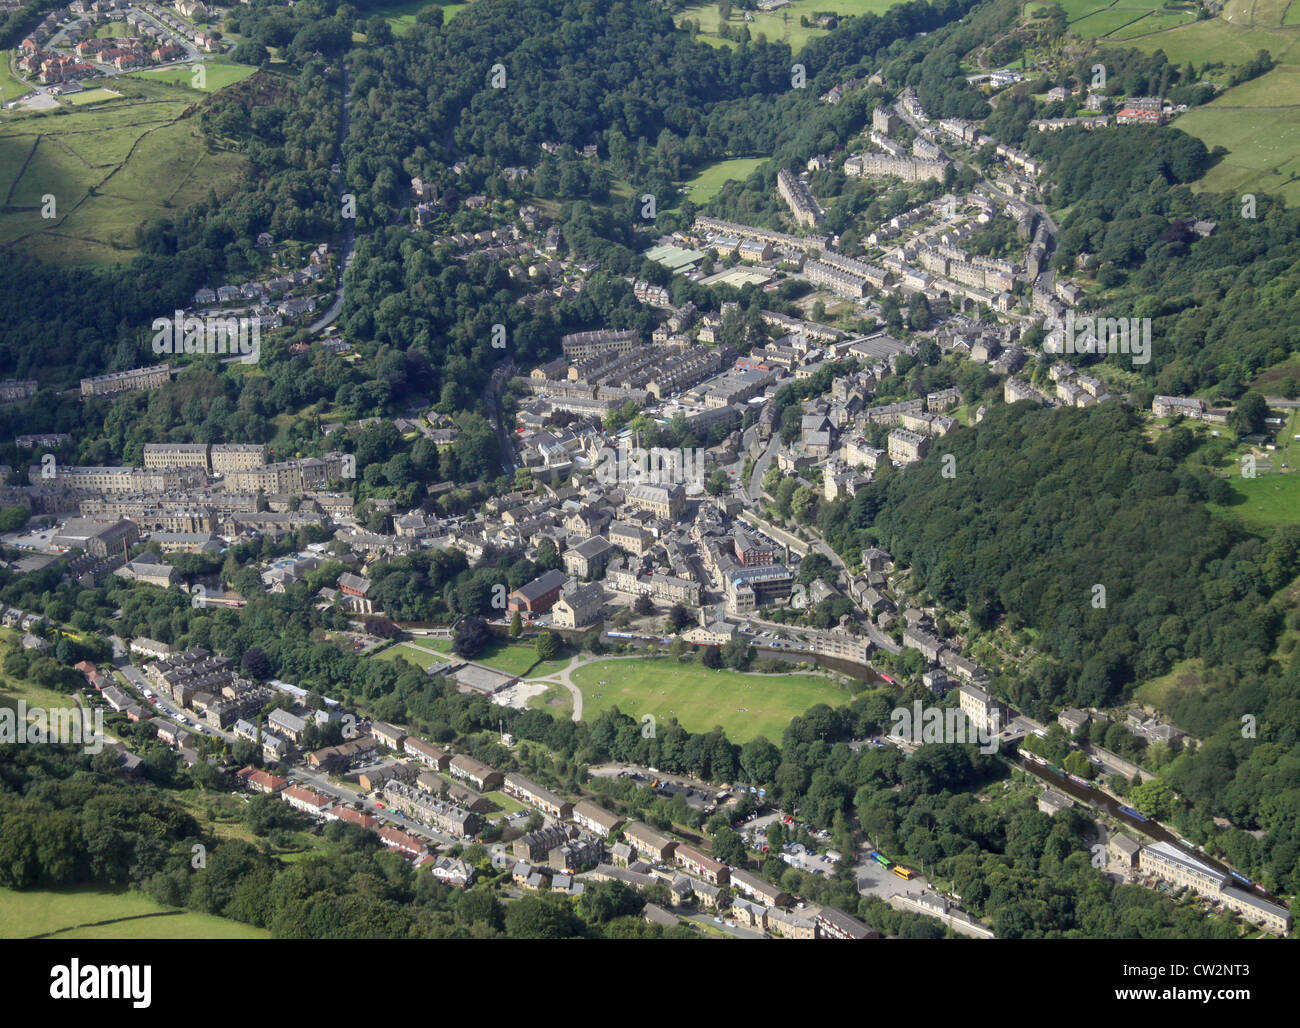 aerial view of Hebden Bridge, West Yorkshire - Stock Image